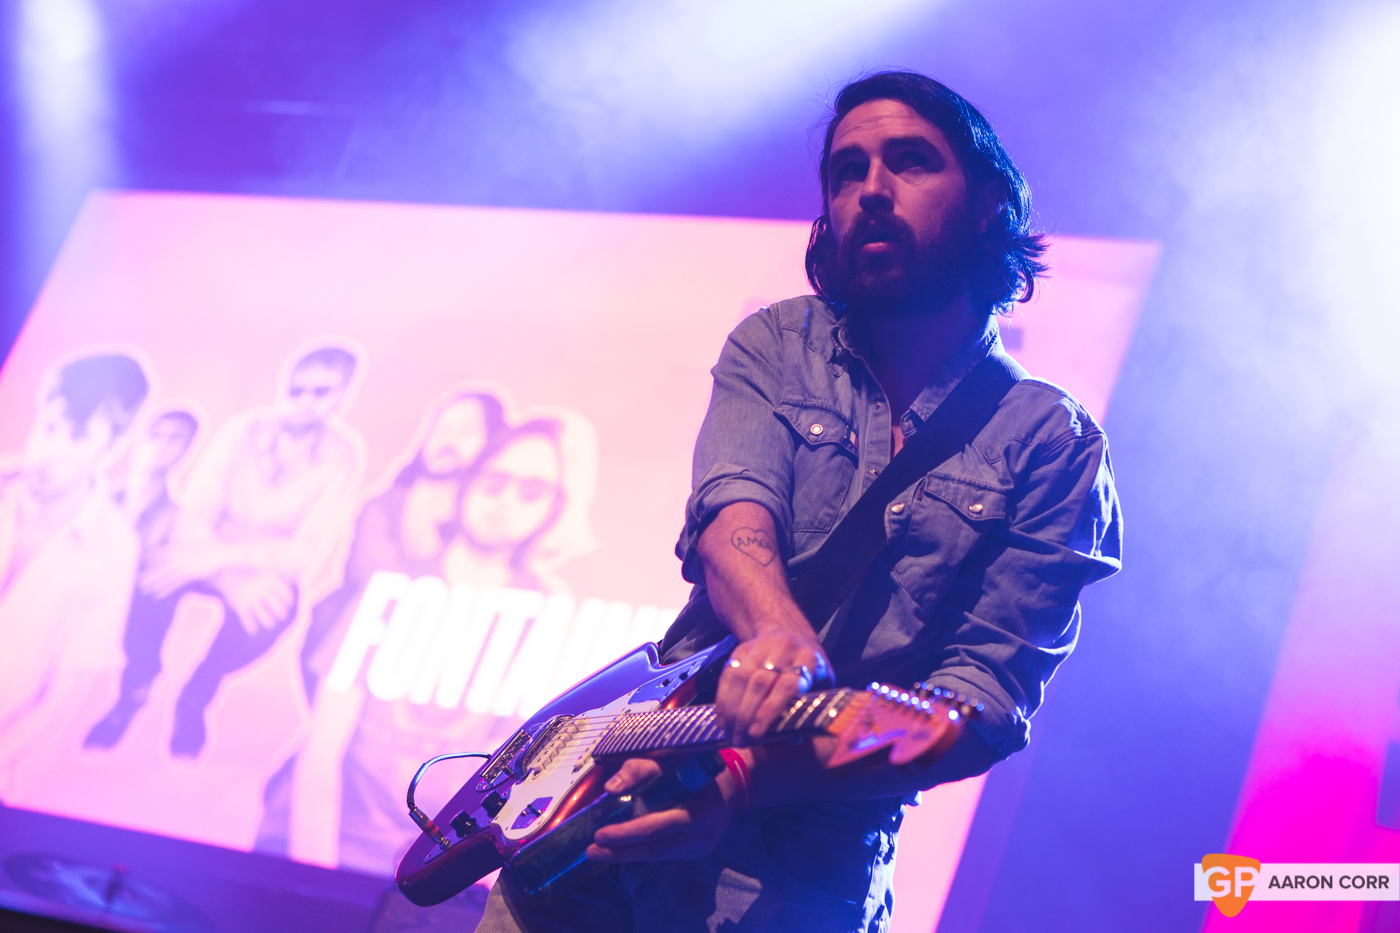 Fontaines DC at Choice Music Prize 2020 in Vicar Street, Dublin on 05-Mar-20 by Aaron Corr-2681